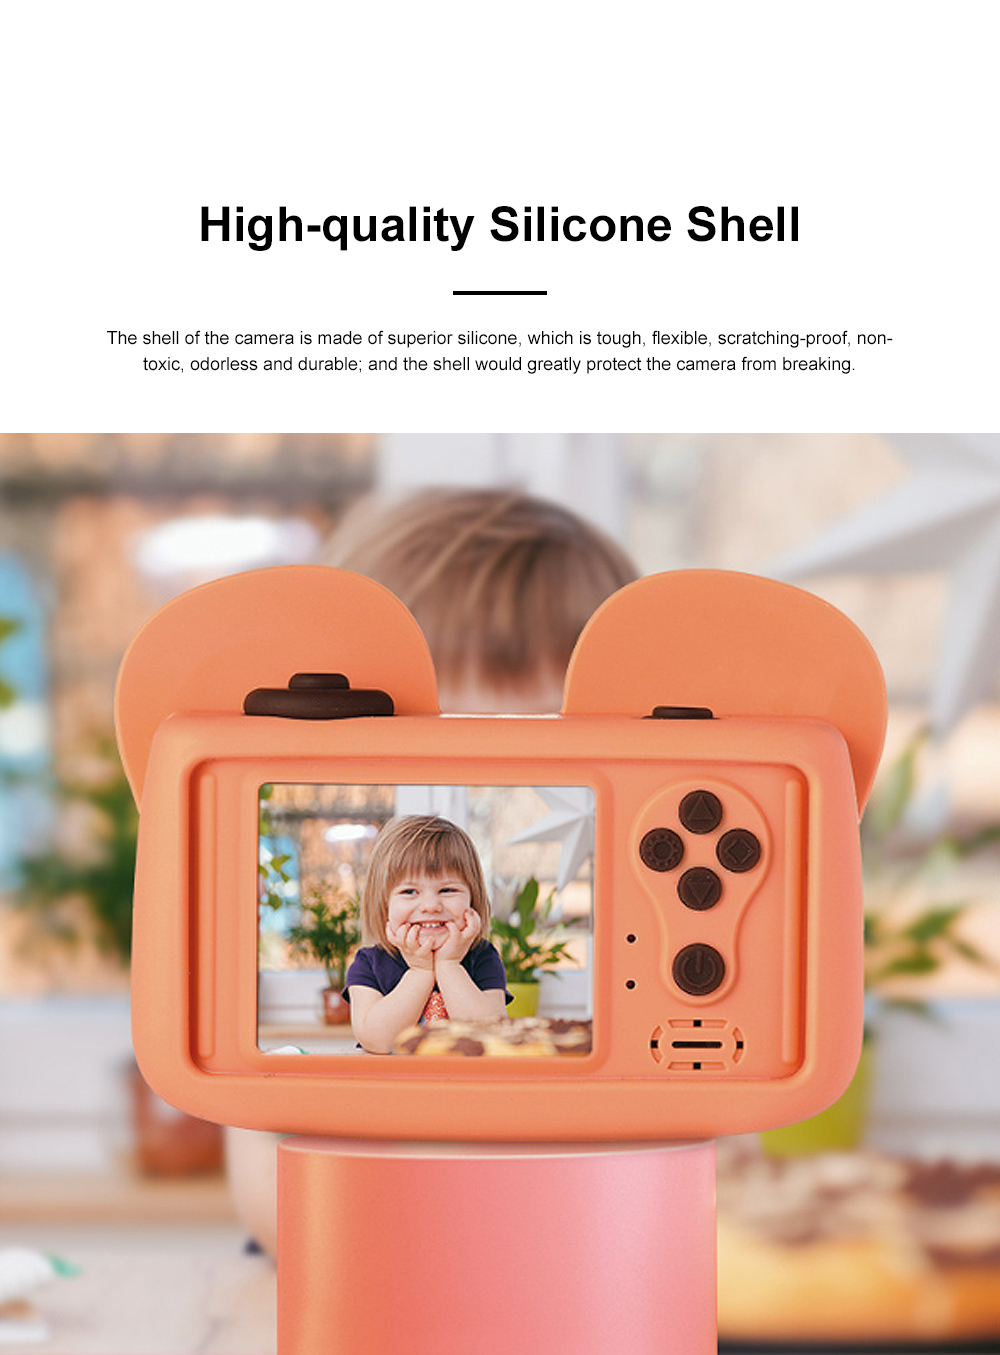 Cute Animal Model Mini Digital Camera for Children WIth Breaking-proof Silicone Shell 16G 1200W HD Pixel 2.0 inch Video Recorder Birthday Present 1